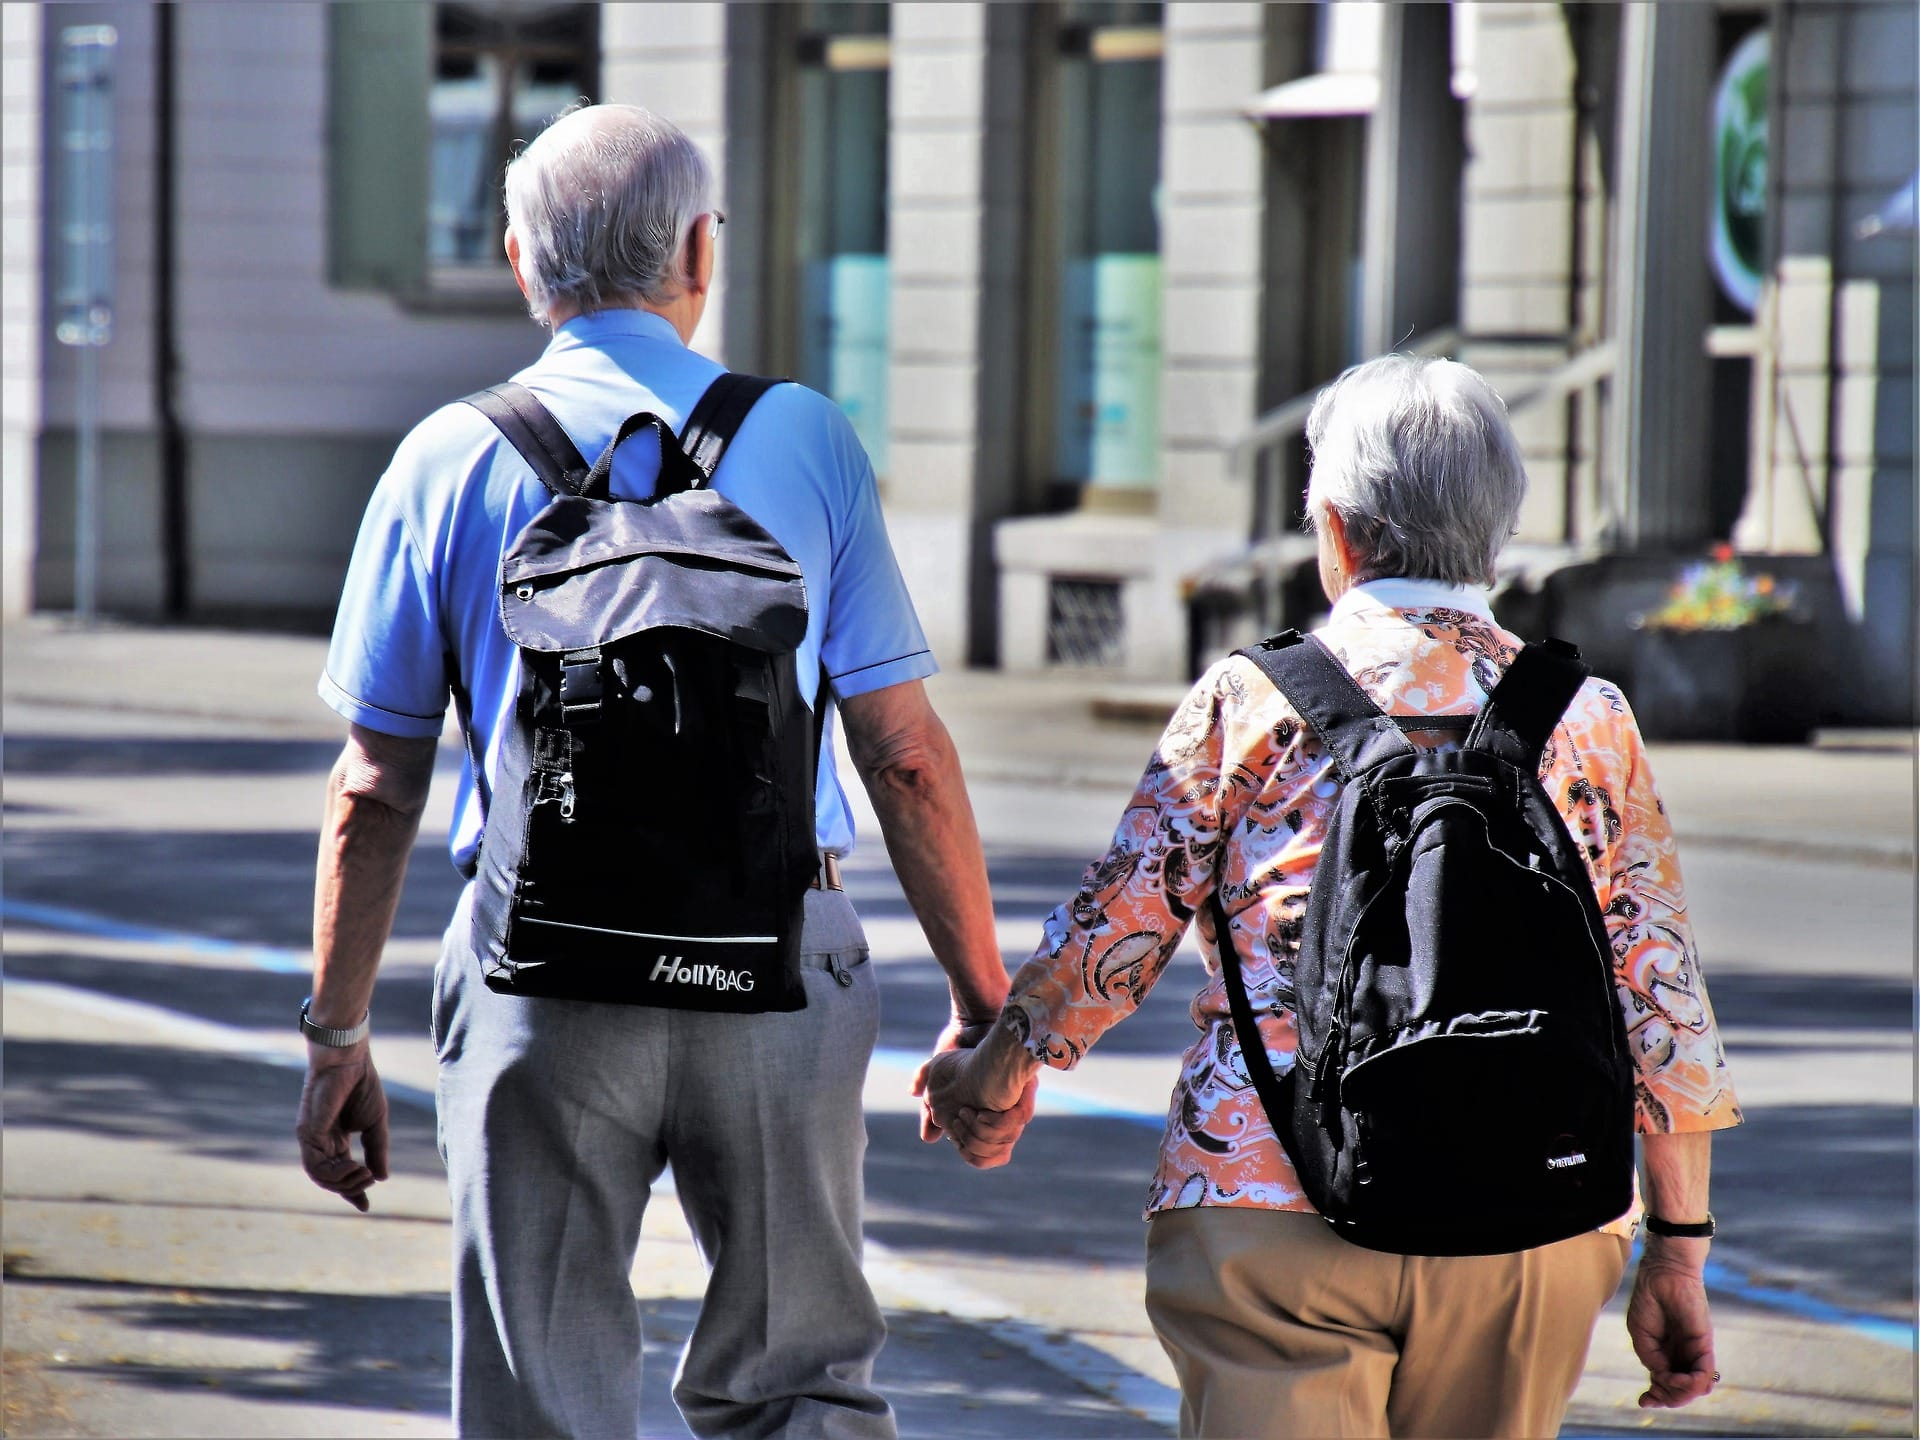 two seniors with backpacks holding hands during travel | Medicare Annual Wellness Visit